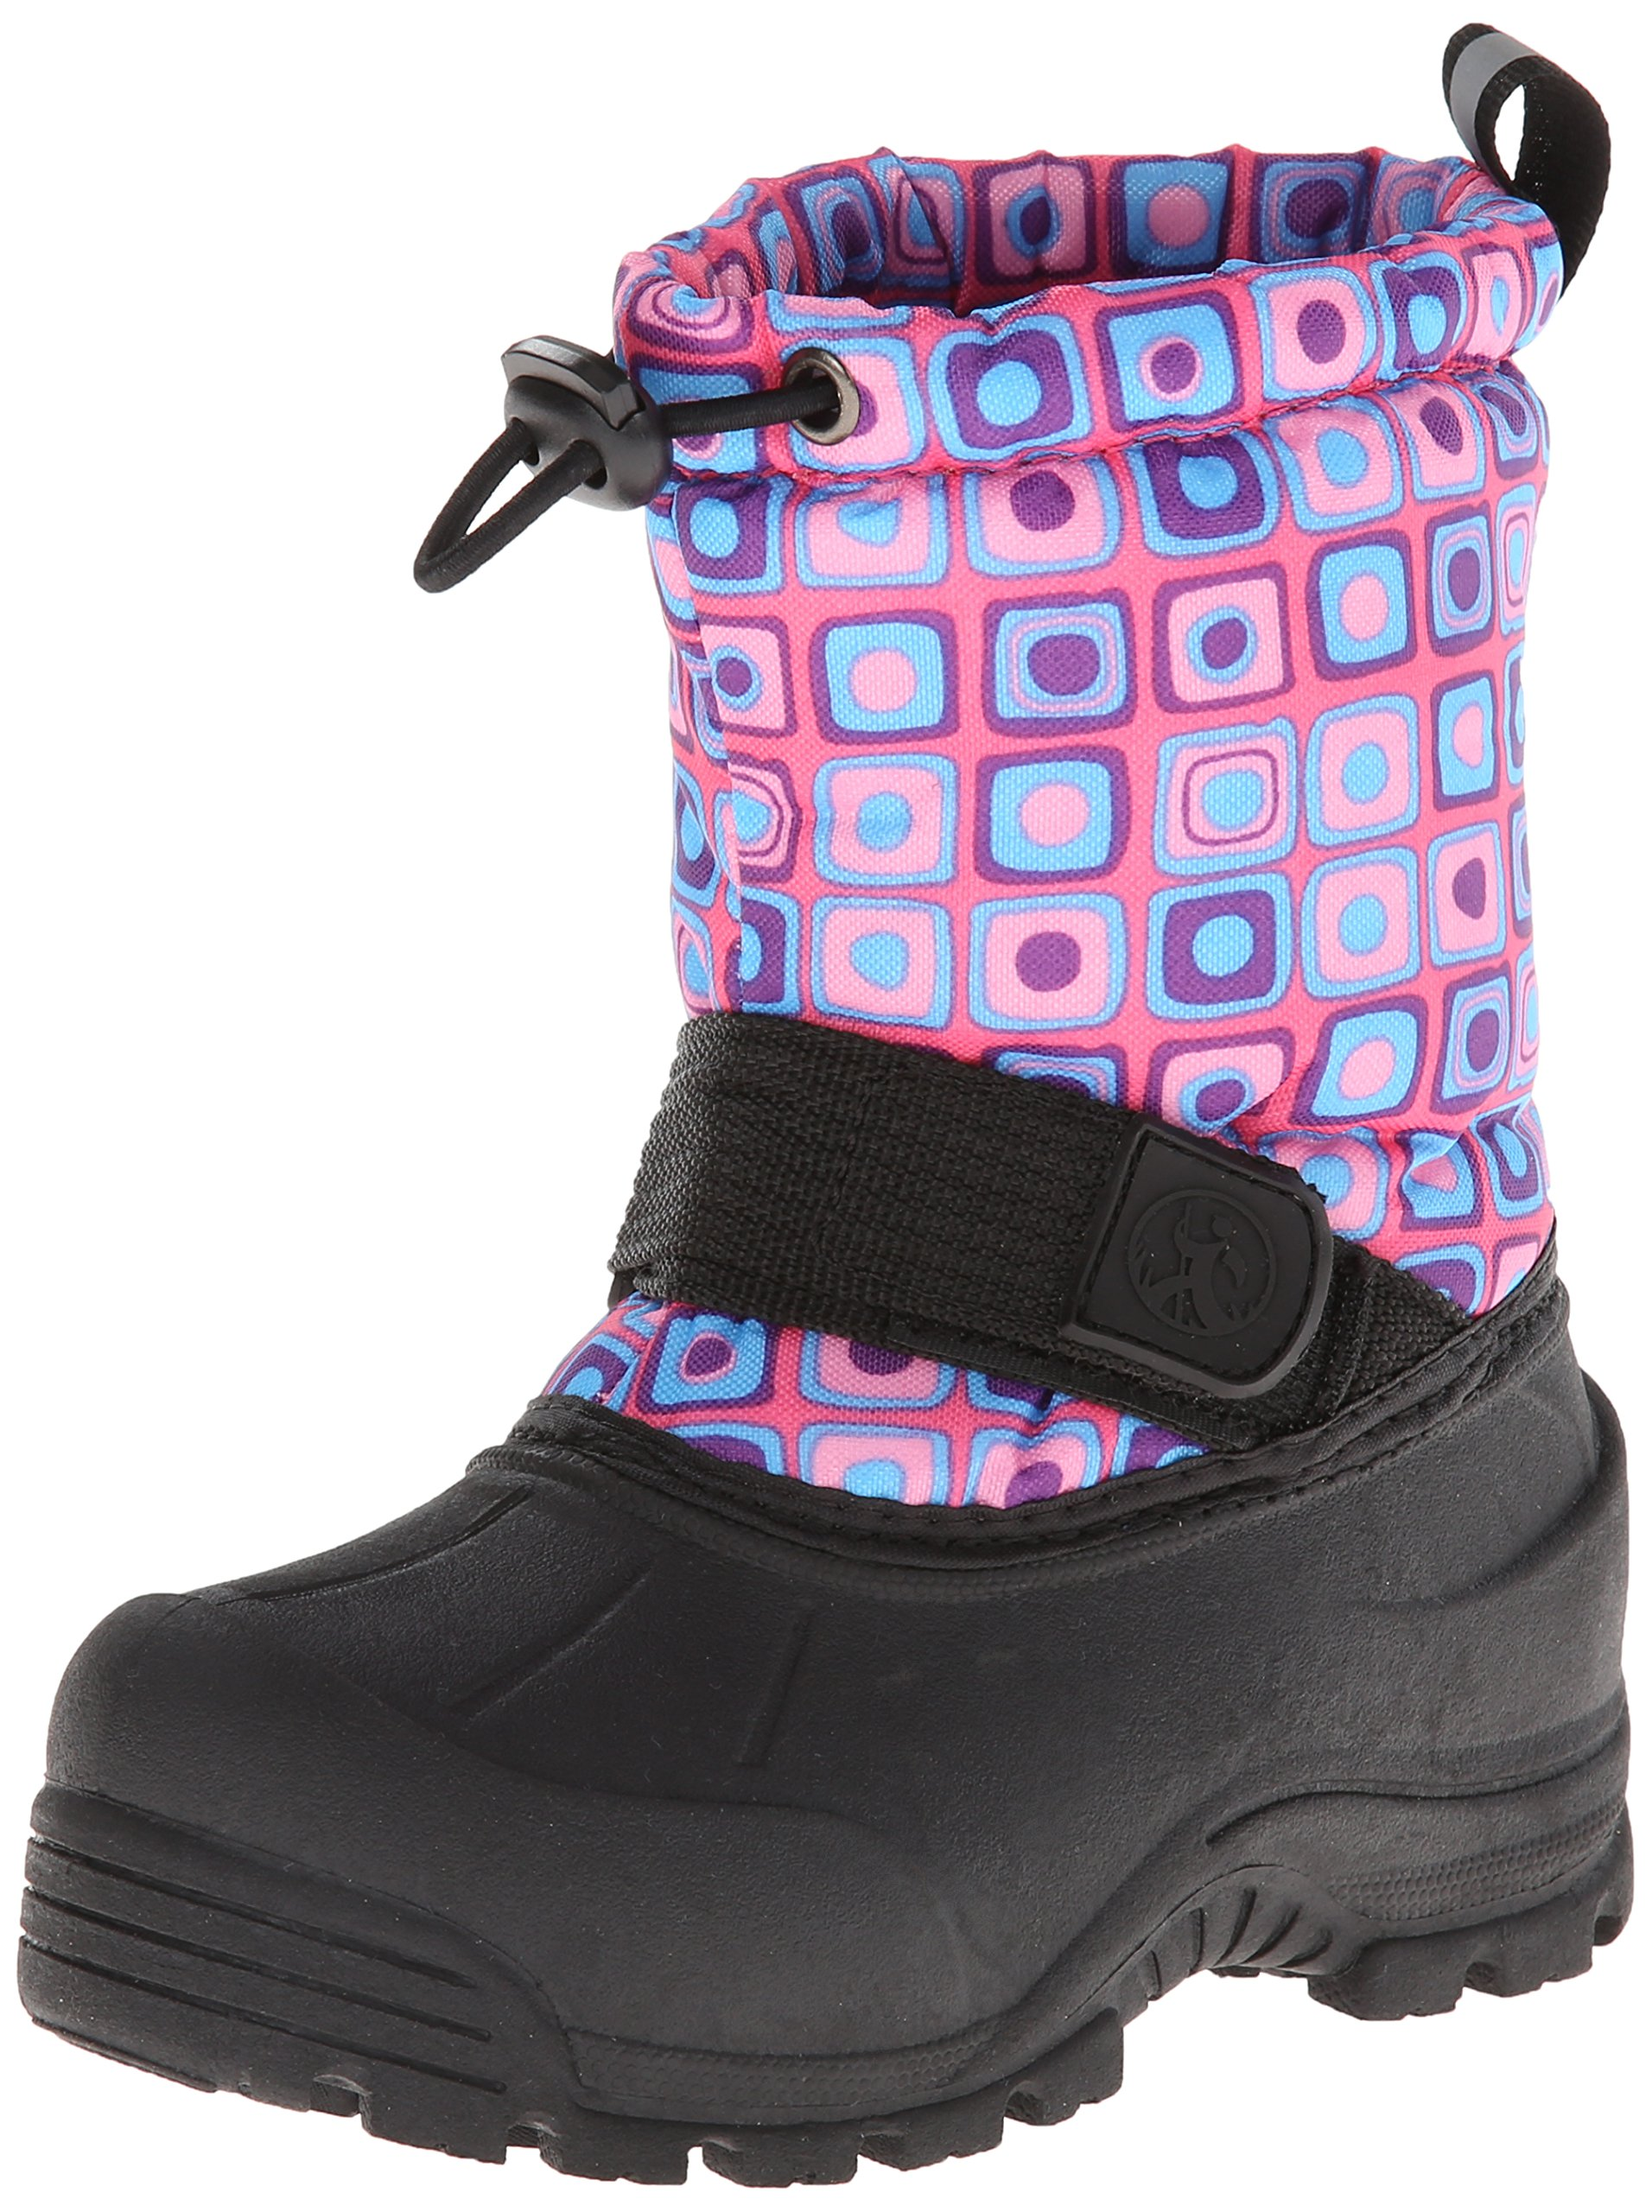 Northside Frosty, Pink/Turquoise, 13 M US Little Kid